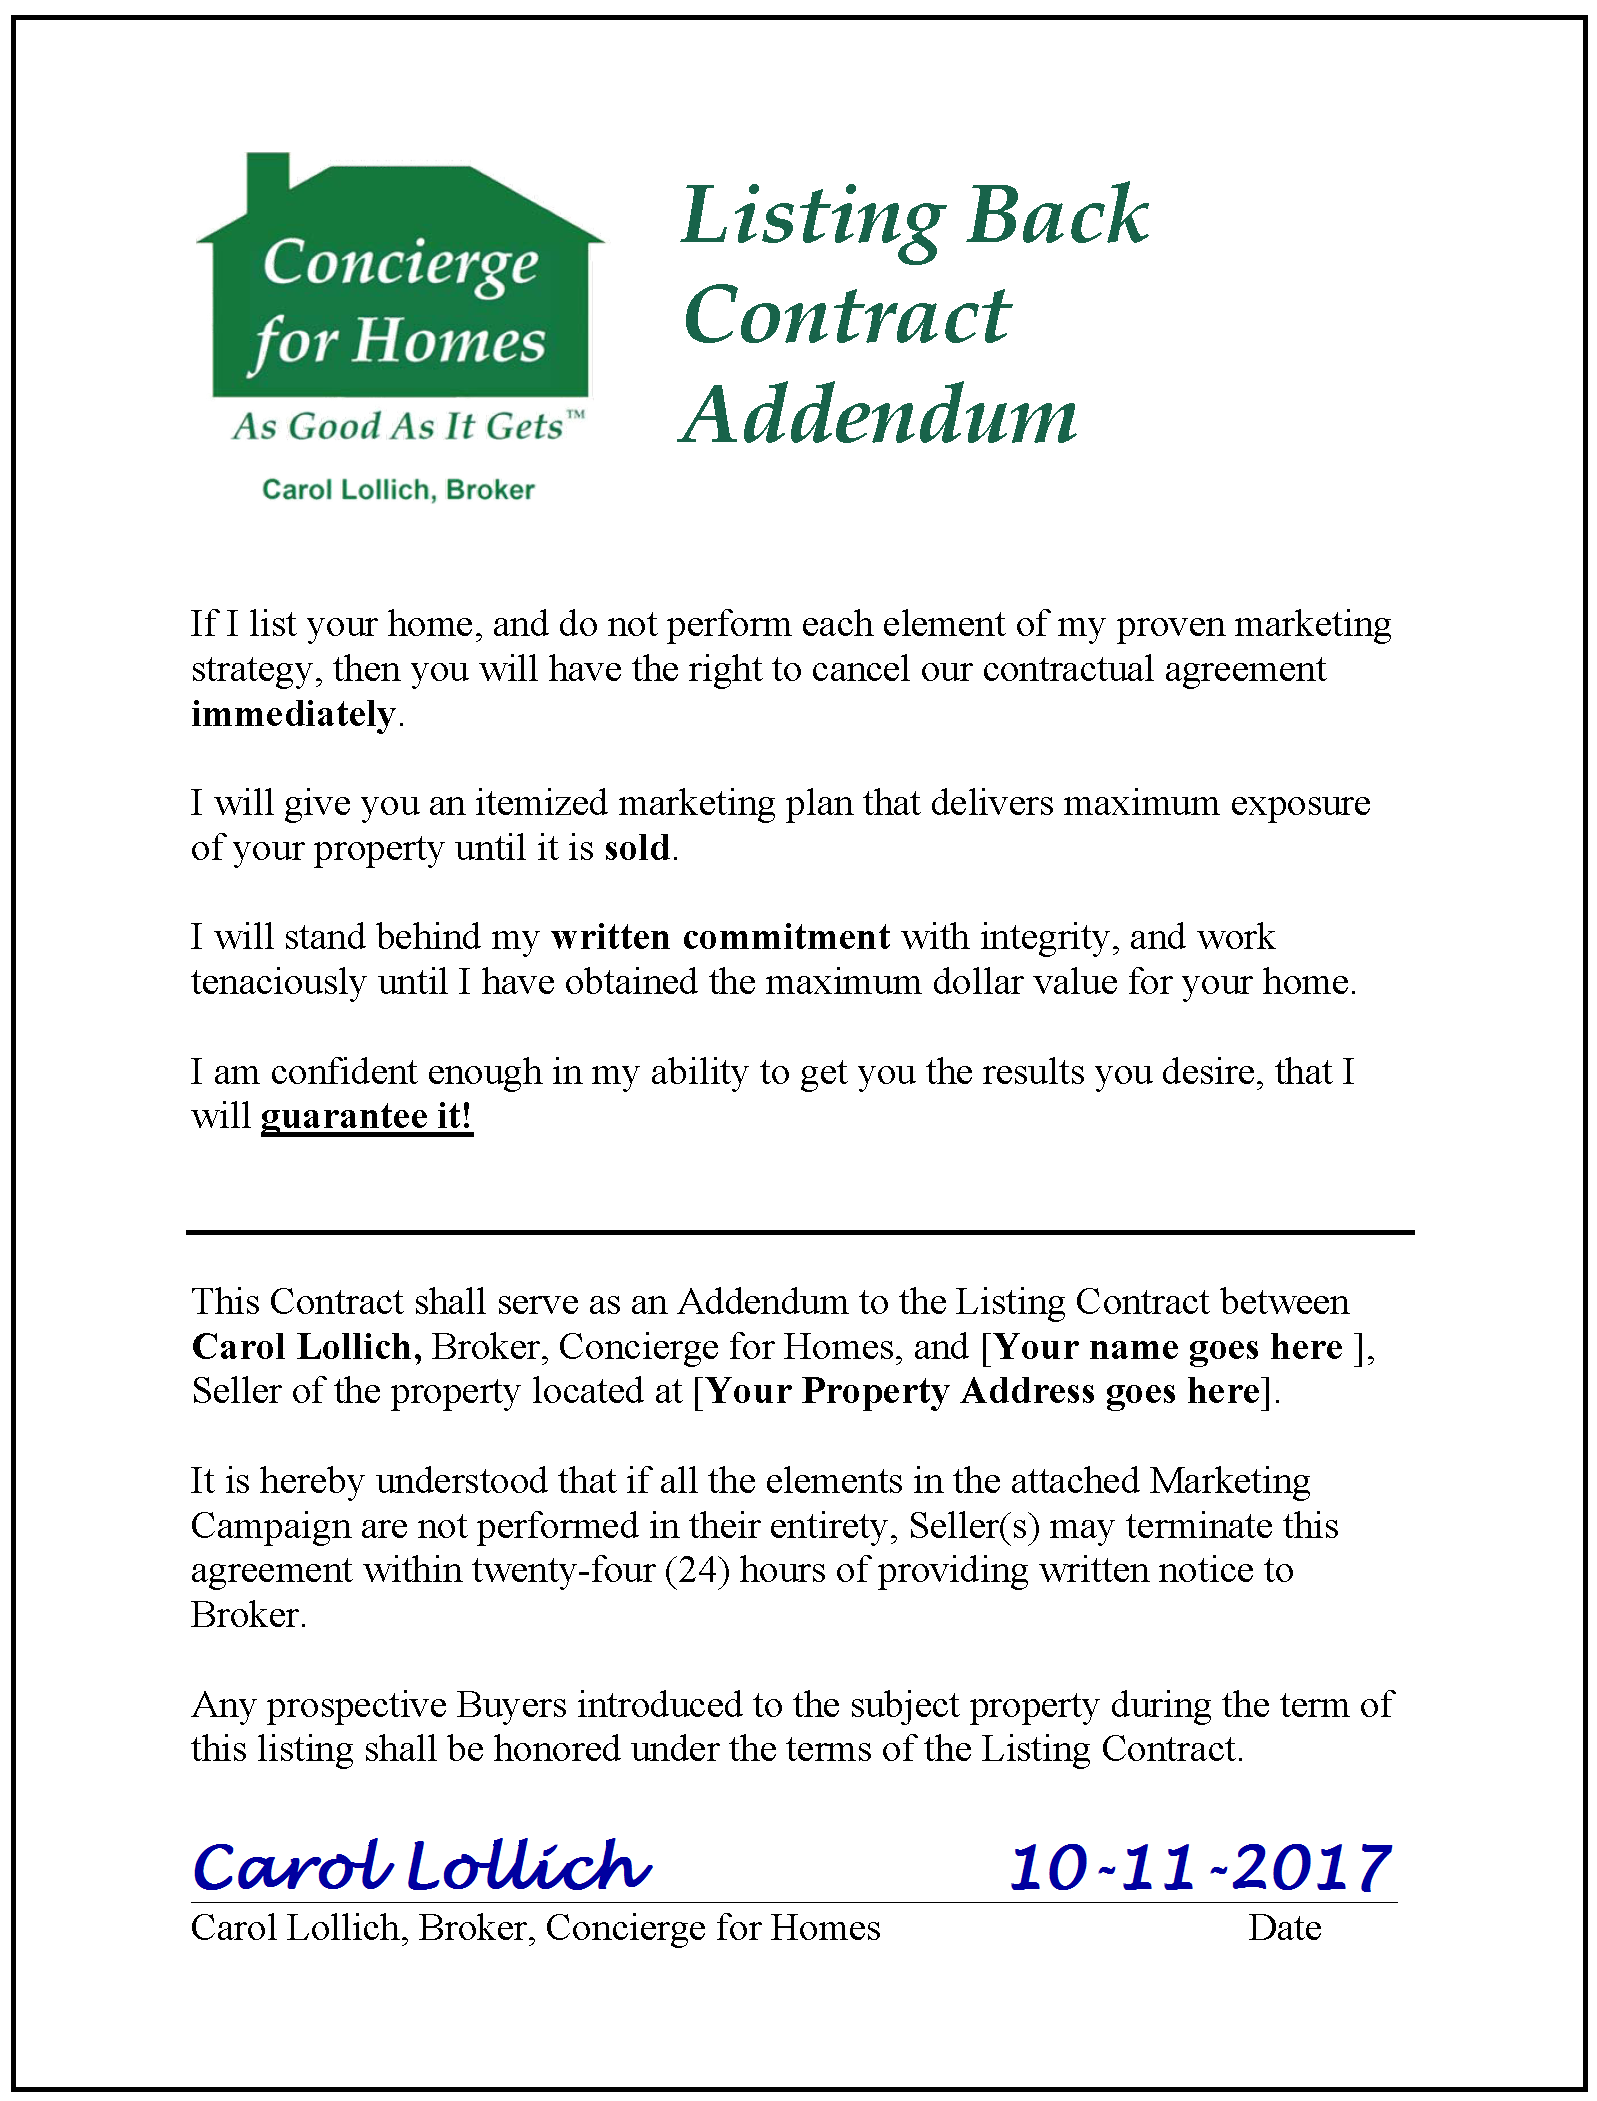 Listing Back Contract Addendum with 100% Satisfaction Guarantee